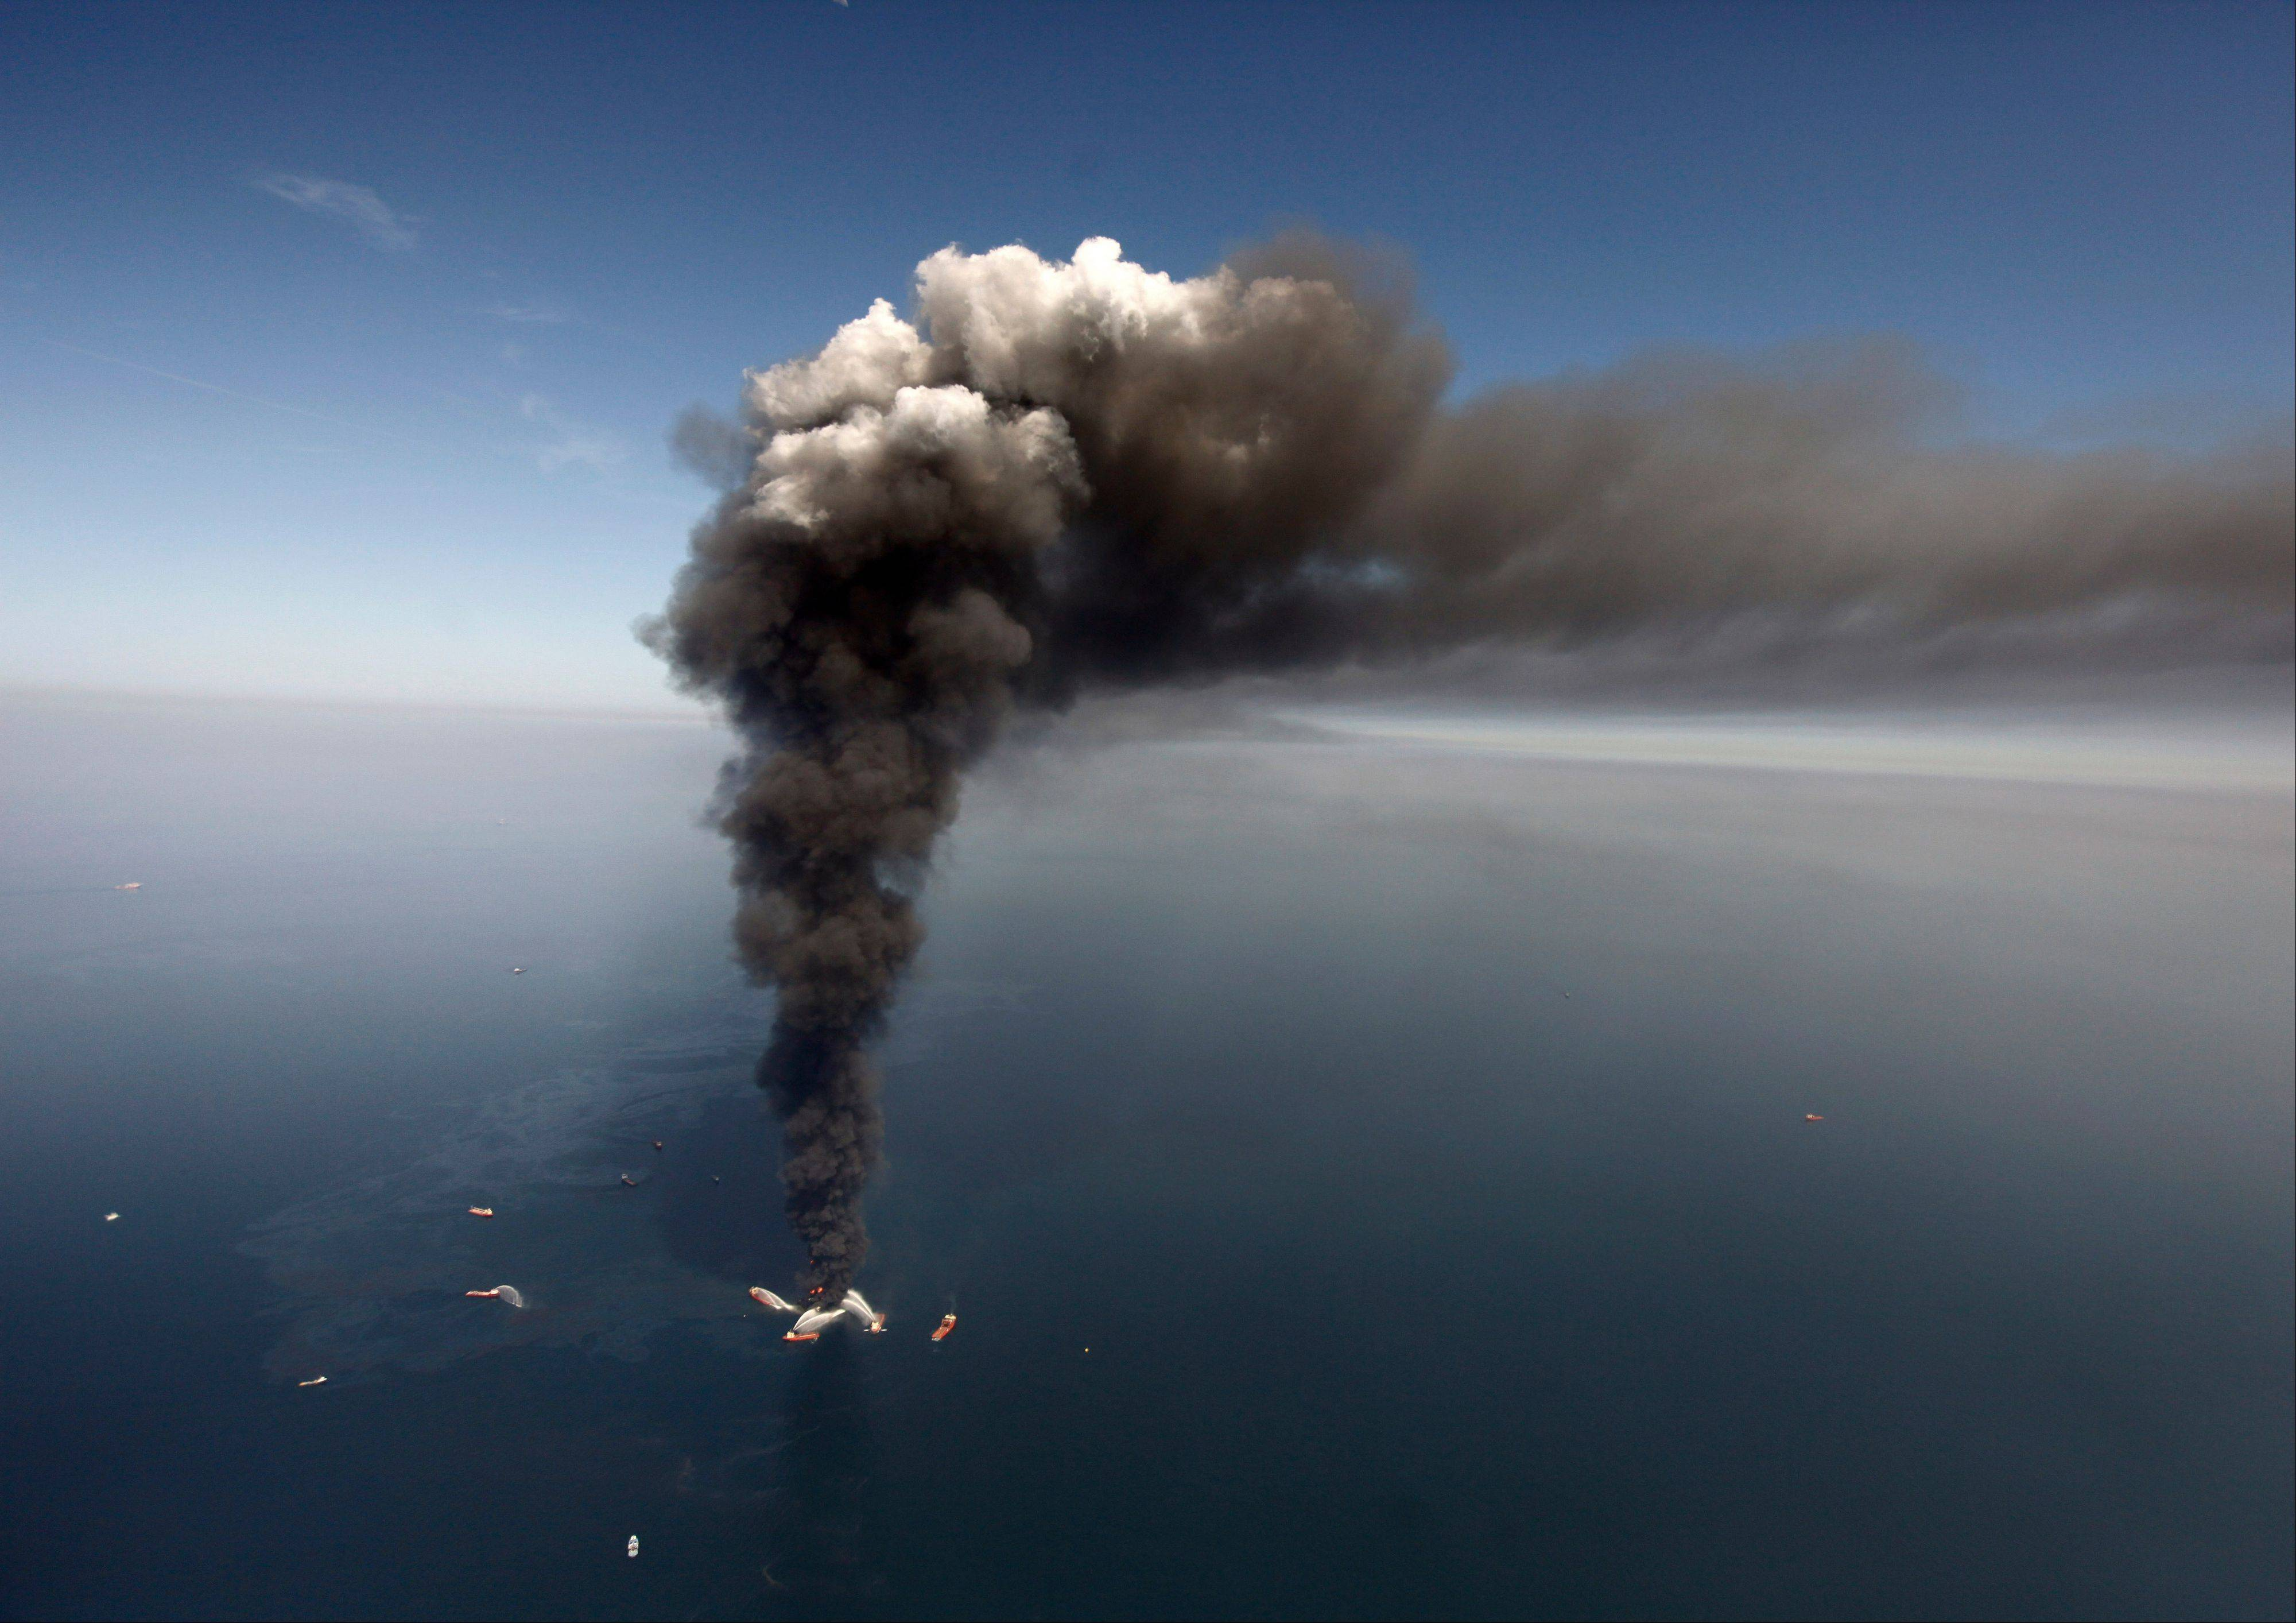 In this 2010 photo, oil can be seen in the Gulf of Mexico, more than 50 miles southeast of Venice on Louisiana's tip, as a large plume of smoke rises from fires on BP's Deepwater Horizon offshore oil rig.